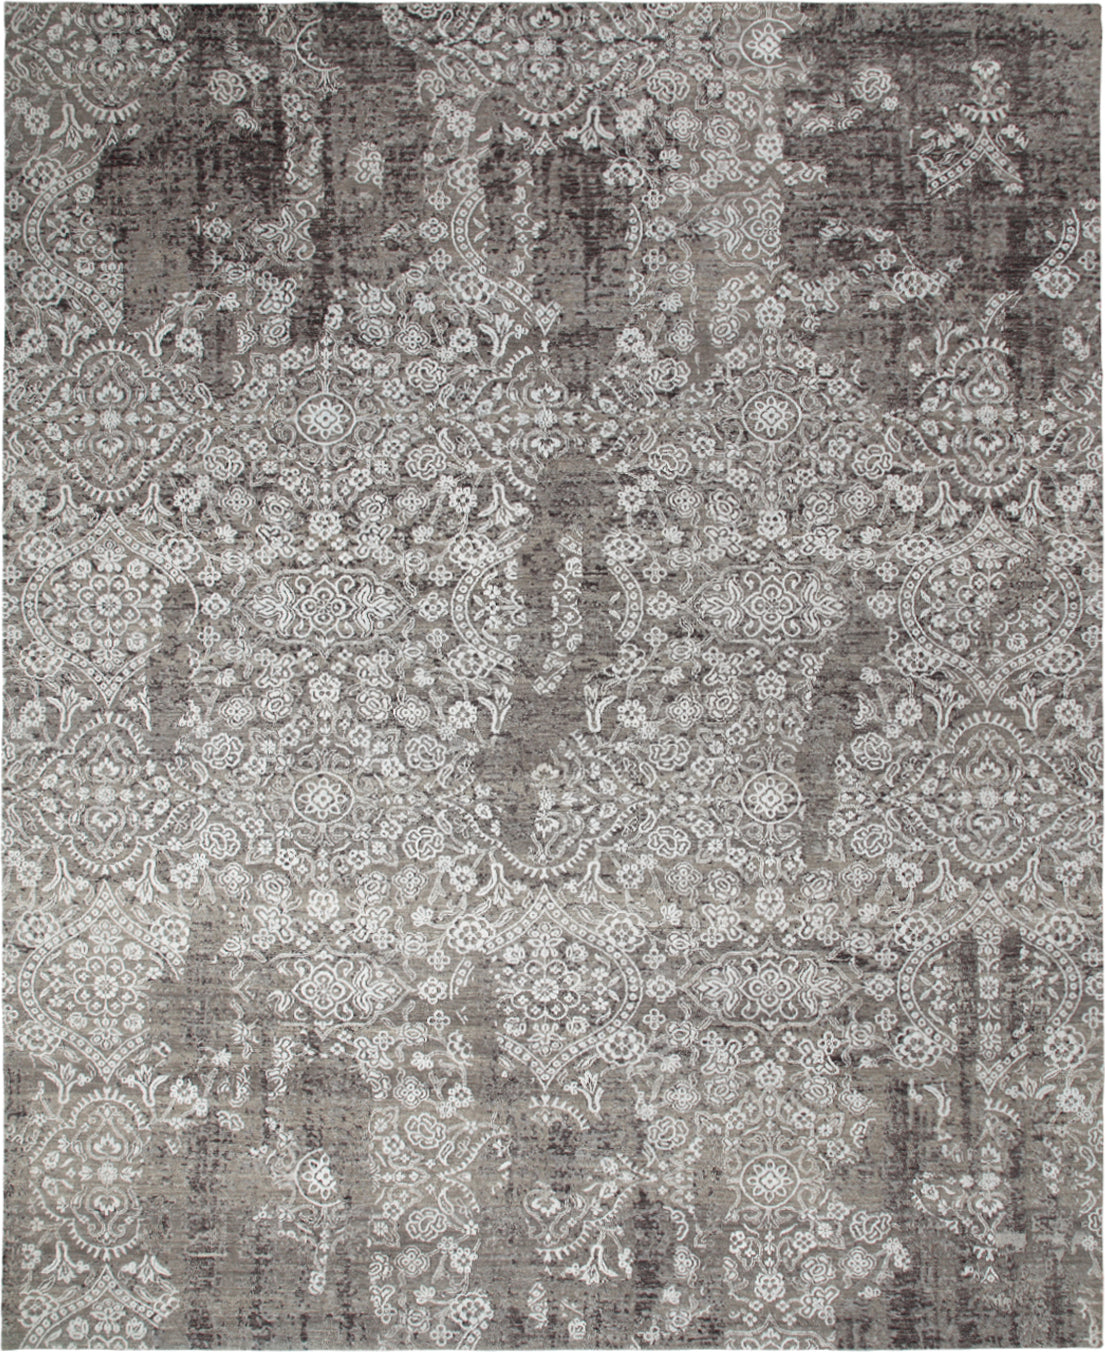 Solo Rugs Jankat M8051-12 Gray Area Rug main image